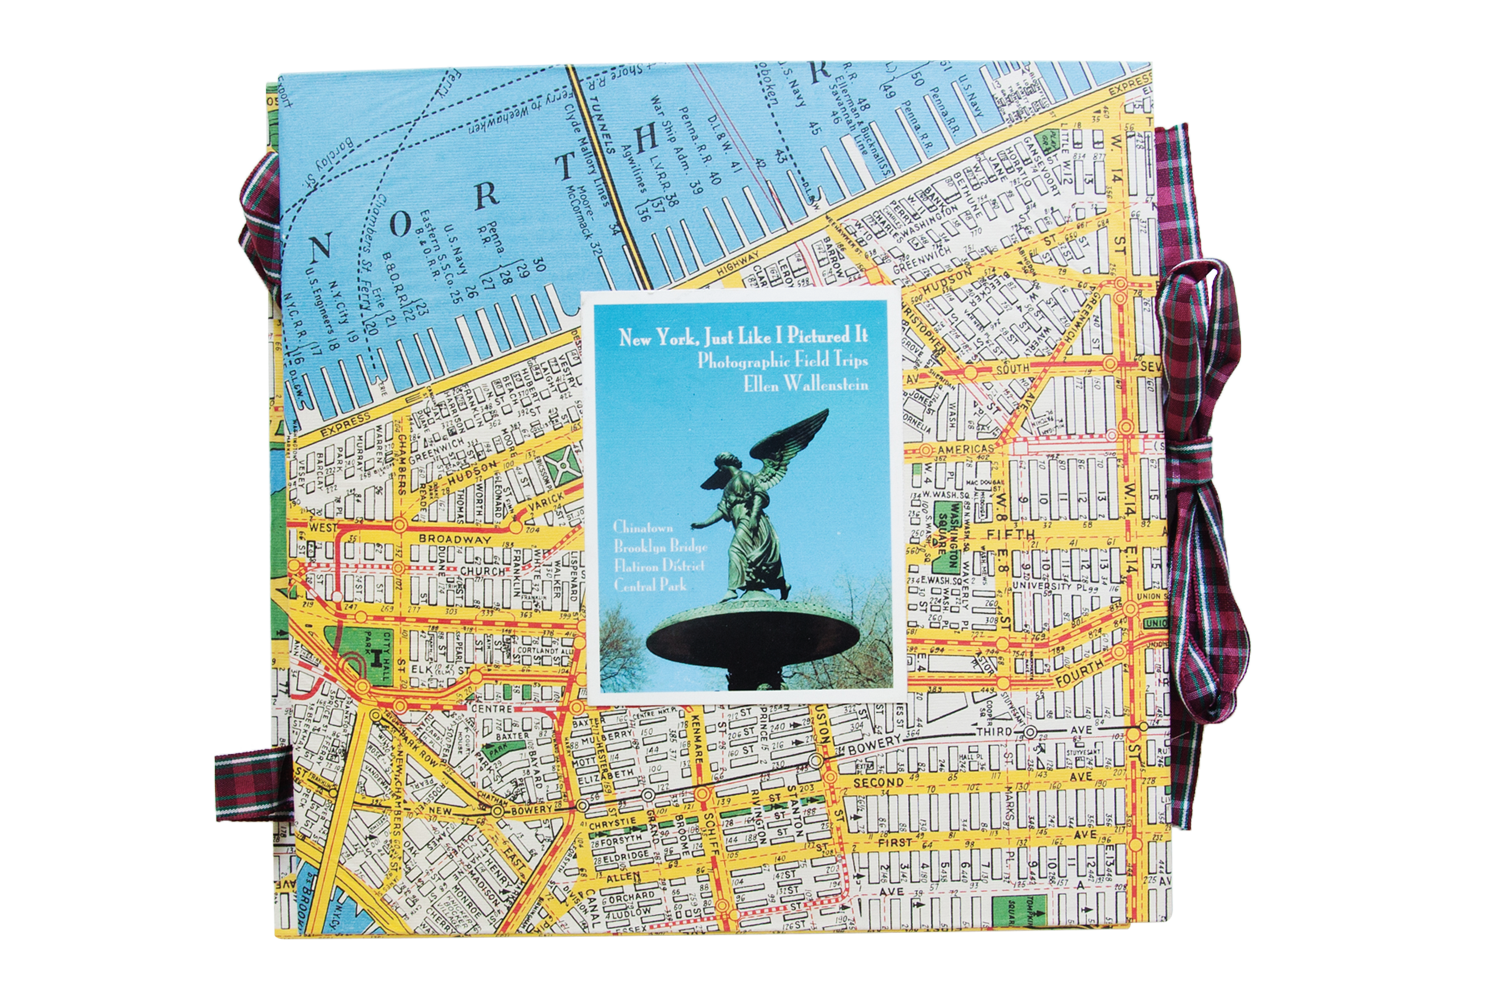 207_New-York-Just-Like-I-Pictured-It-(cover)_-copy.png.png